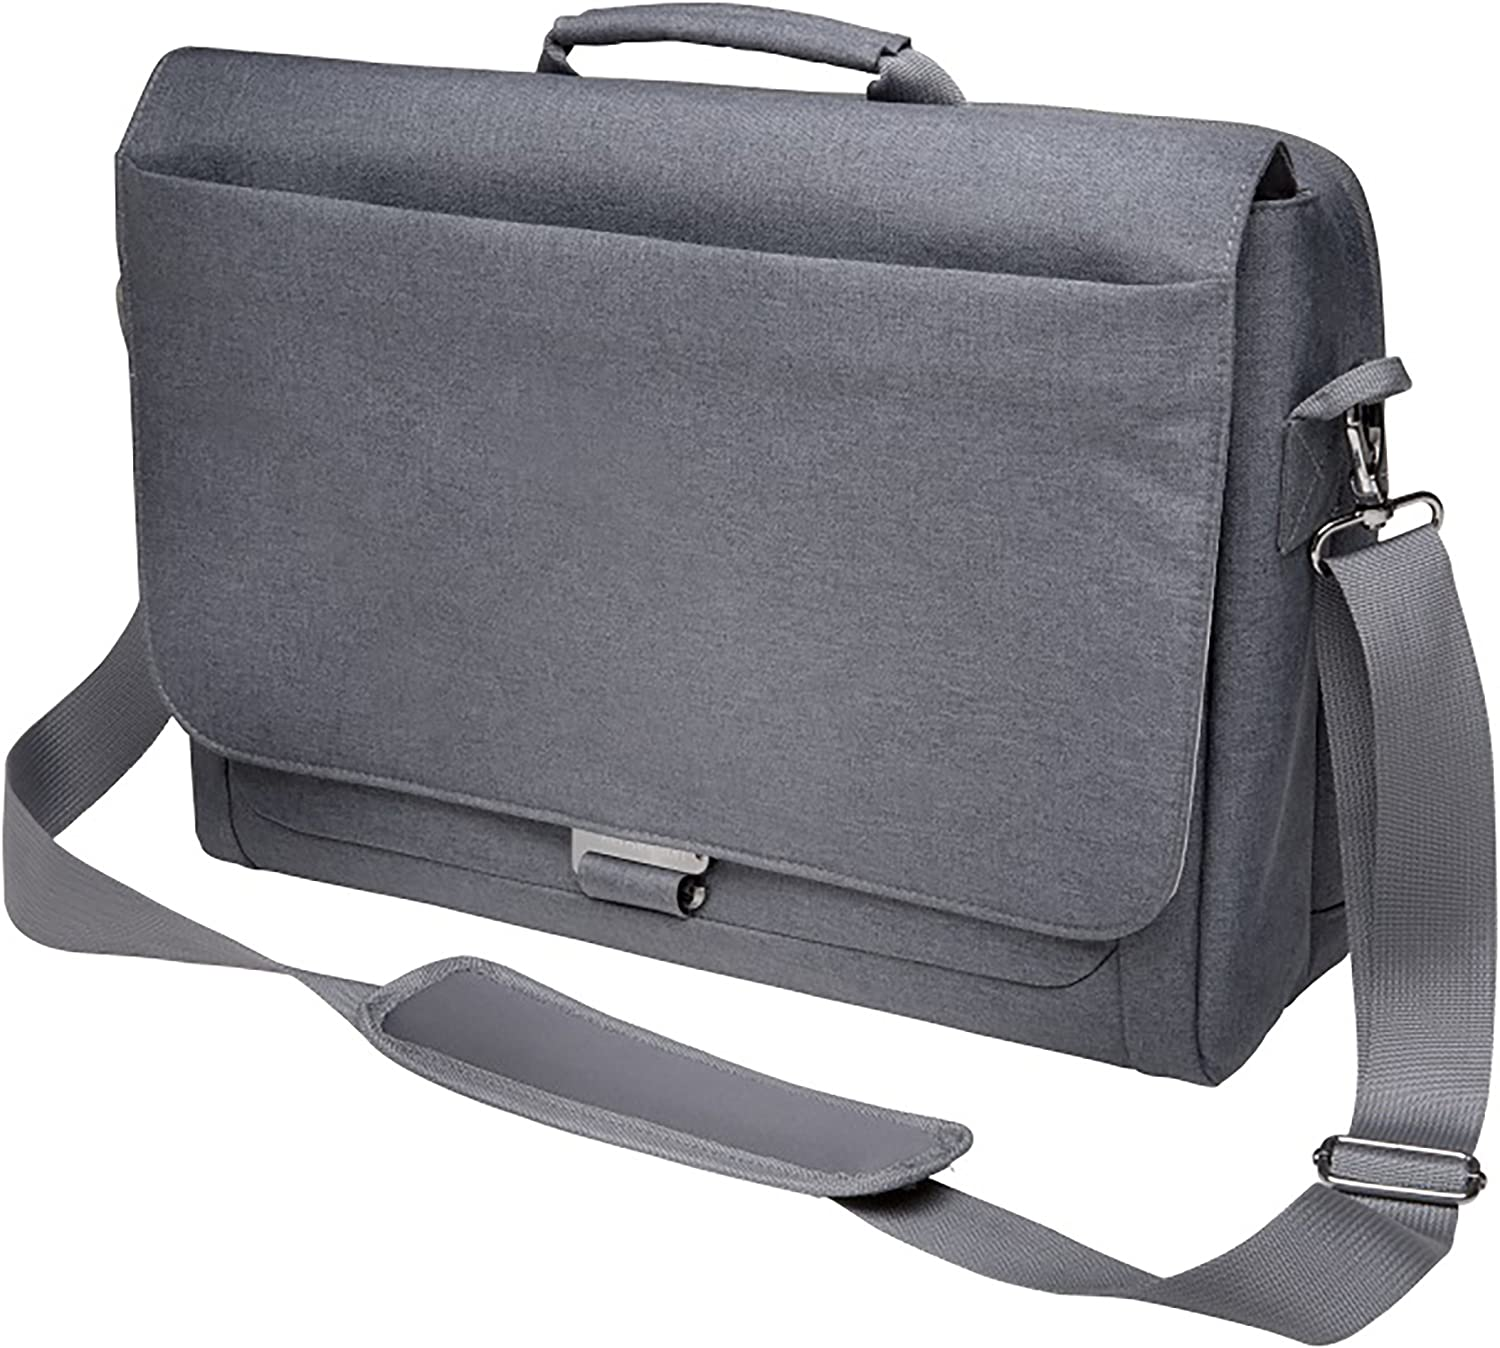 Kensington LM340 Laptop Case Messenger 14.4-Inch (K62623WW)